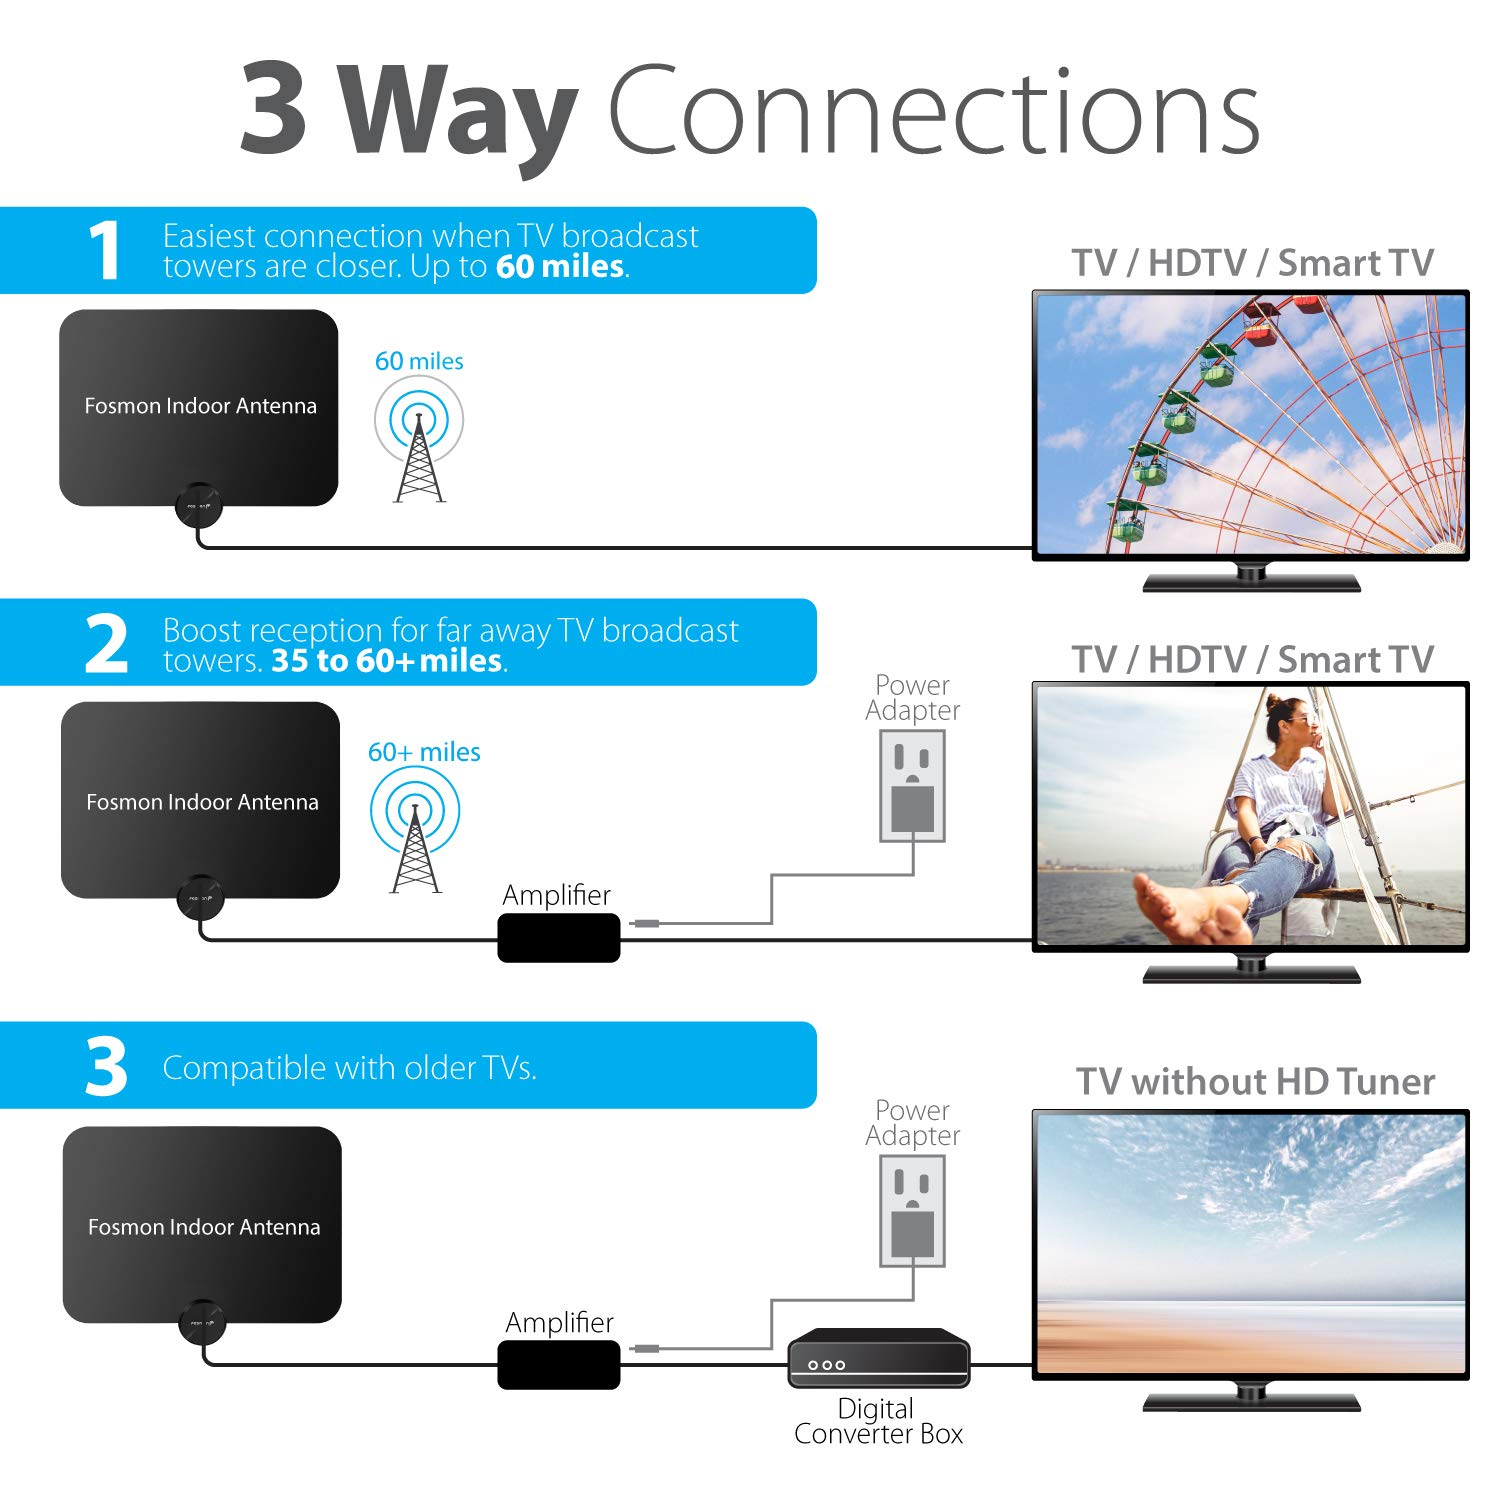 Fosmon HDTV Antenna [2019 Latest], Ultra Thin Indoor Digital TV Antenna Up to 120 Miles Long Ranges, UHF/VHF/1080p 4K Free TV Channel, with Amplifier ...